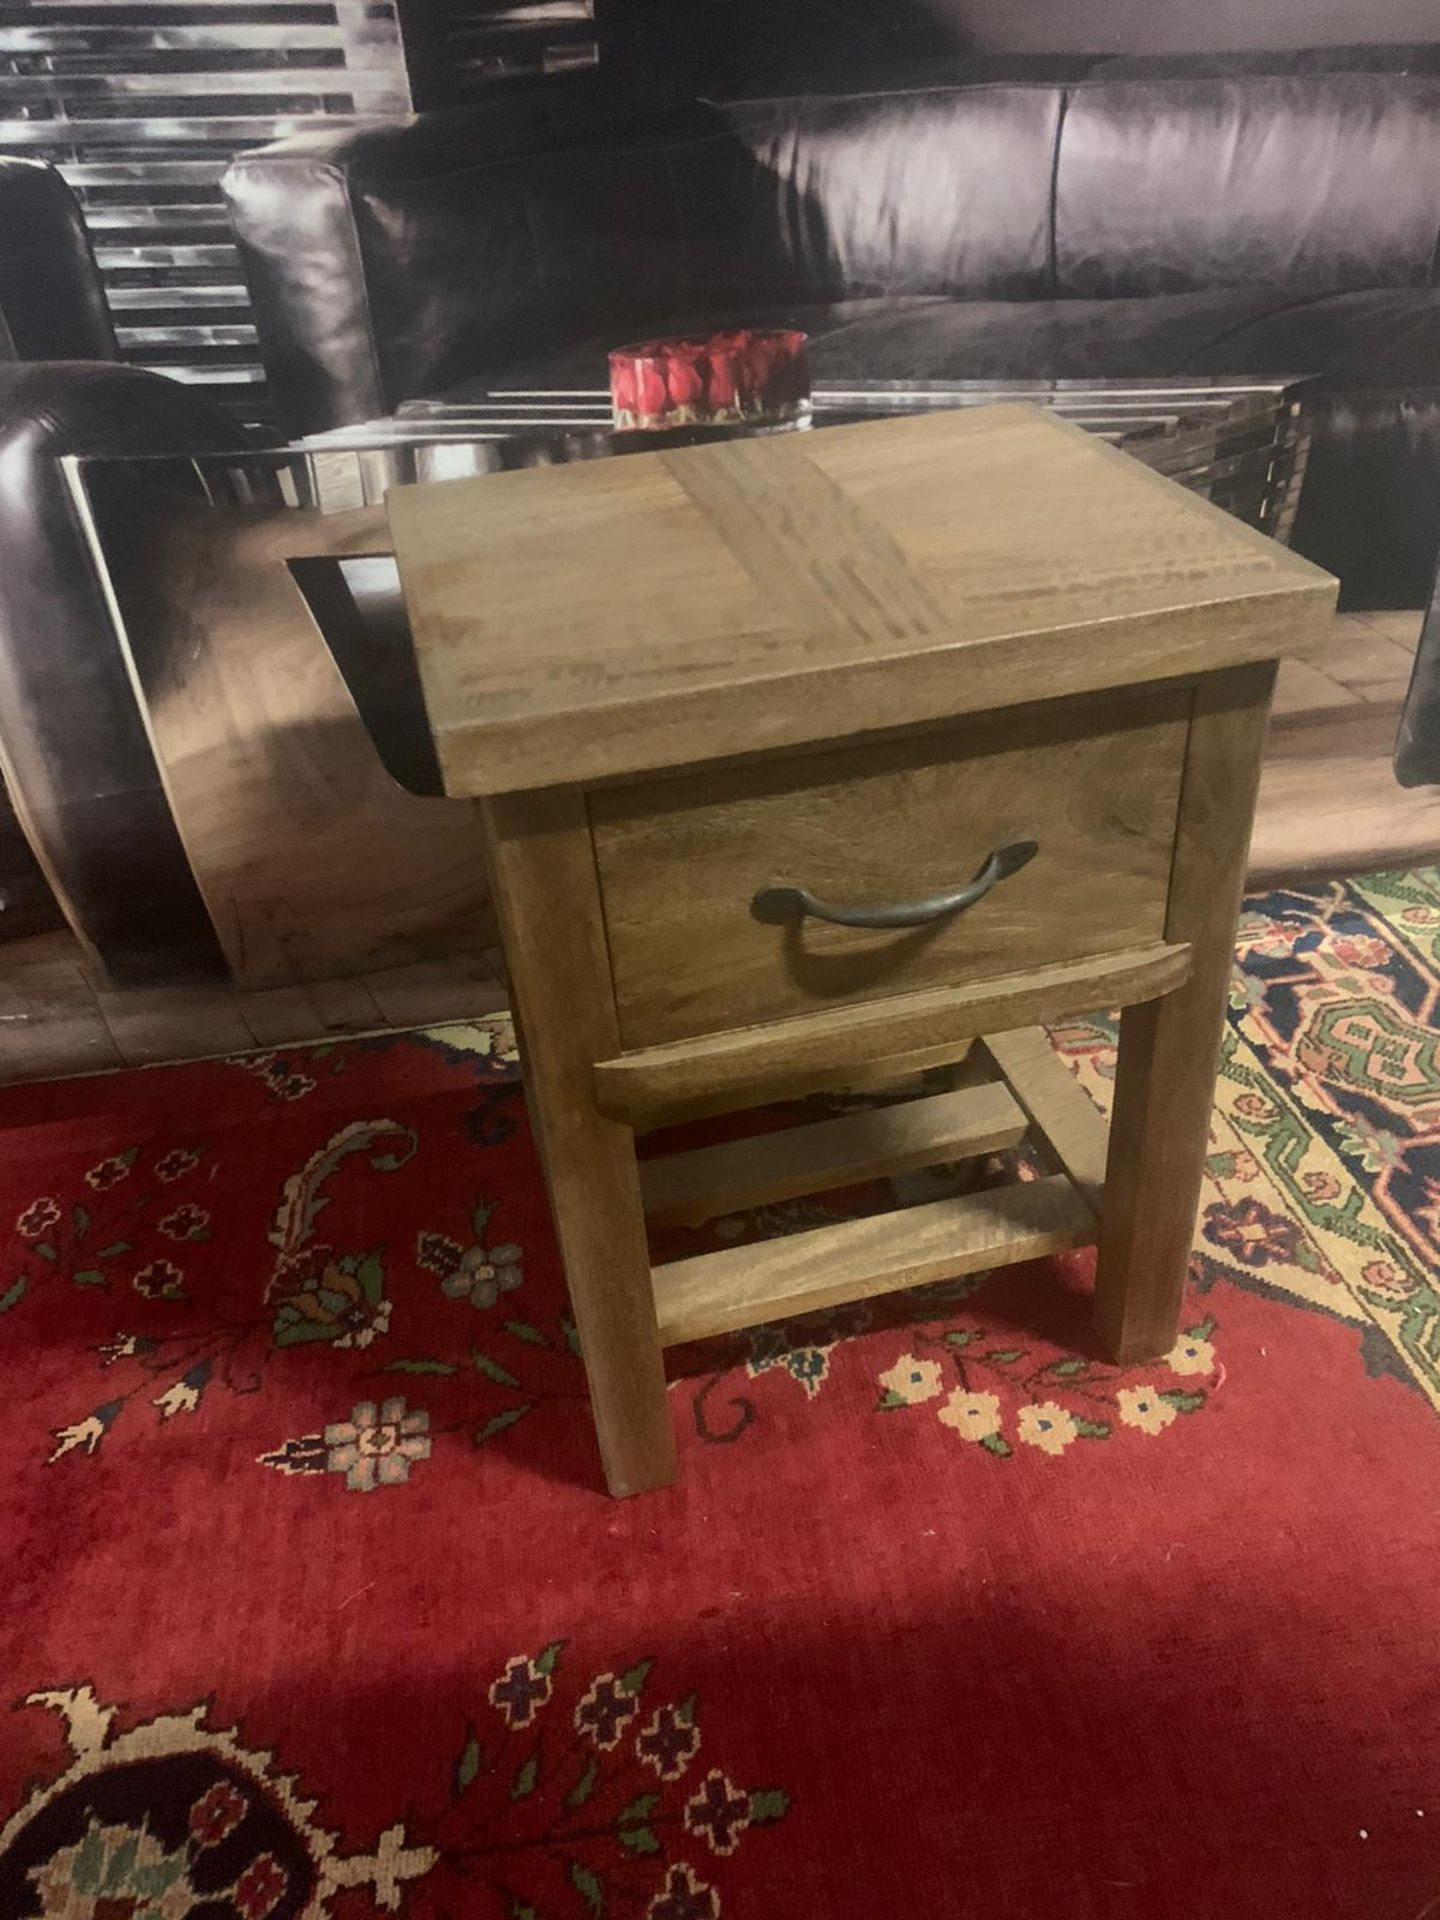 A Pair of Soho Solid Wood Side Table / Bedside 1 Drawer whether it leans more towards traditional - Image 3 of 5